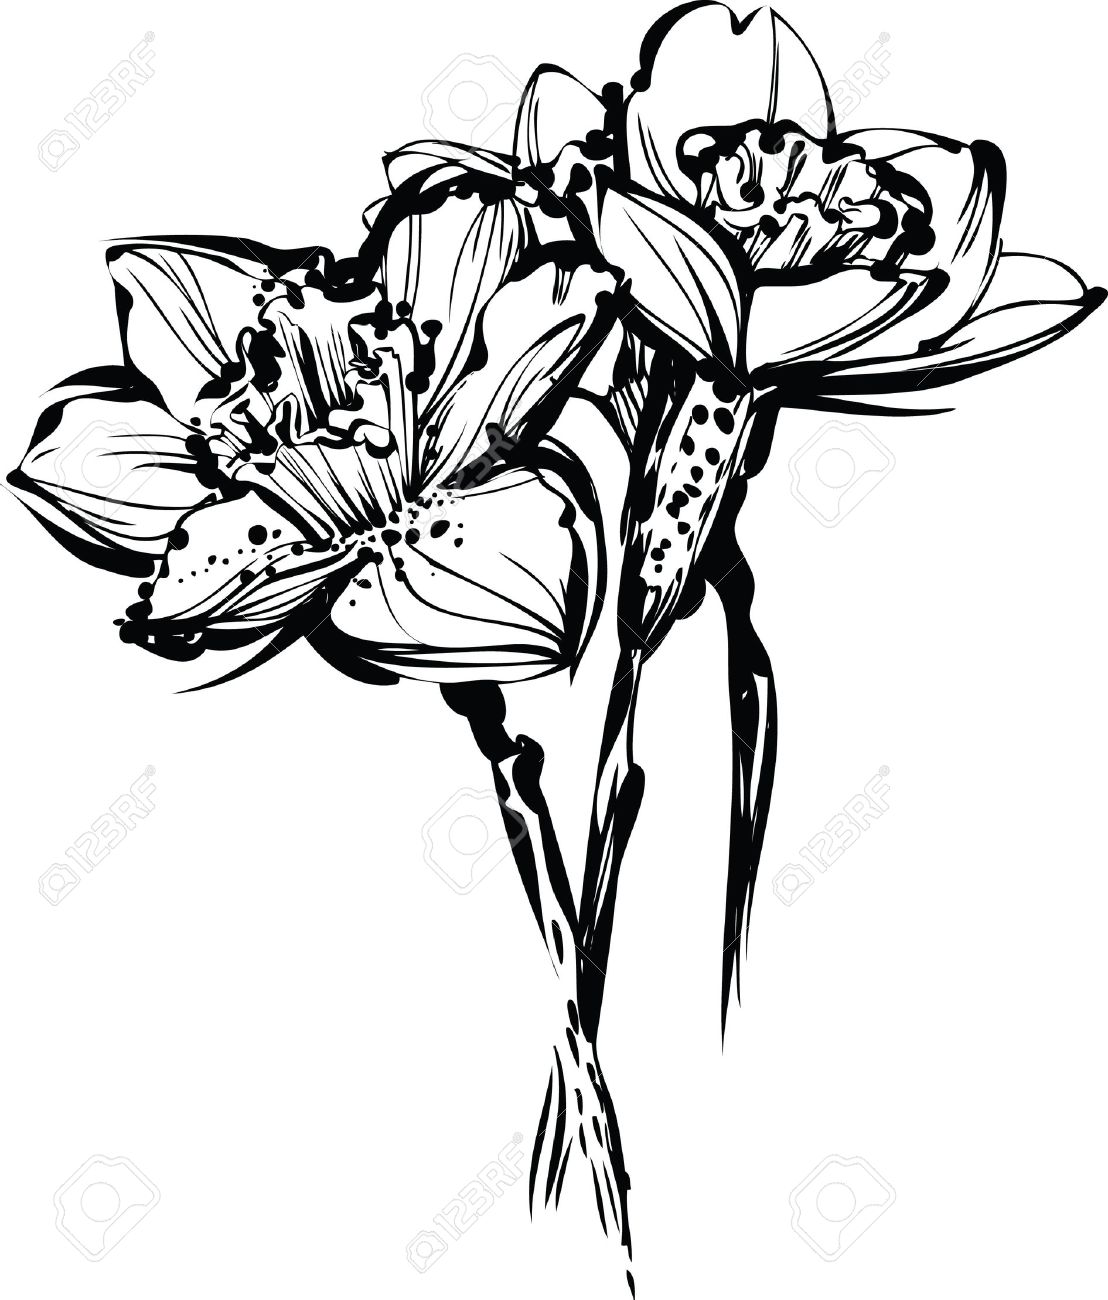 1108x1300 Image Black And White Sketch Of Three Flowers Of Narcissus Royalty